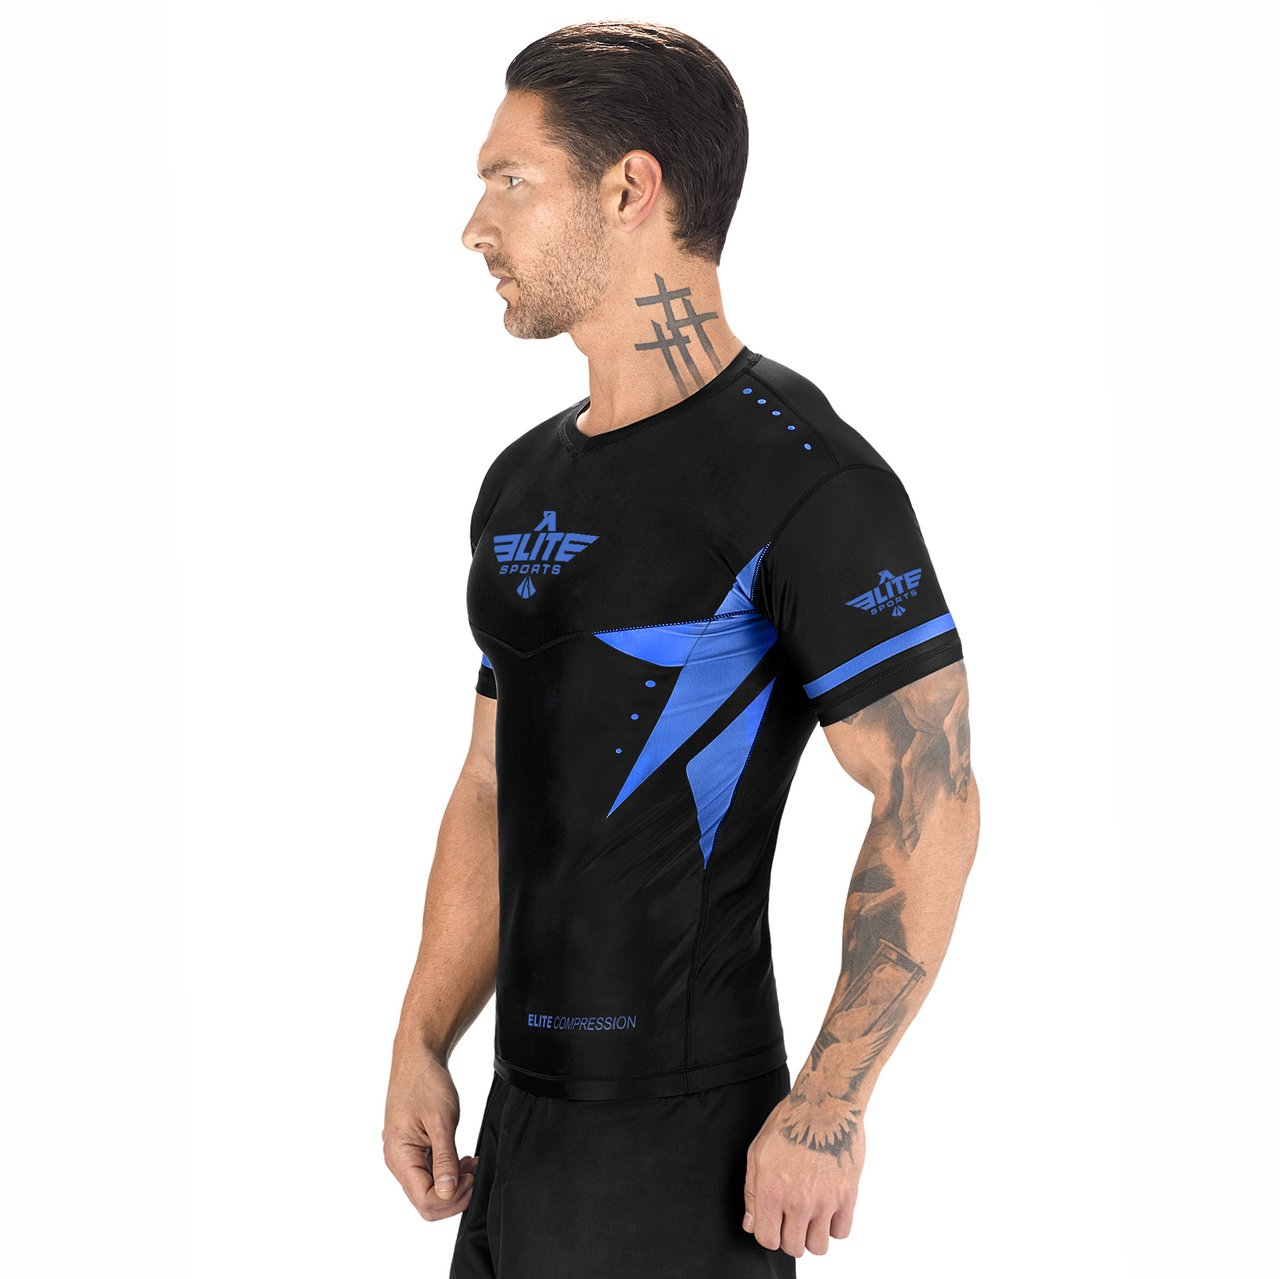 Load image into Gallery viewer, Elite Sports Star Series Sublimation Black/Blue Short Sleeve Muay Thai Rash Guard